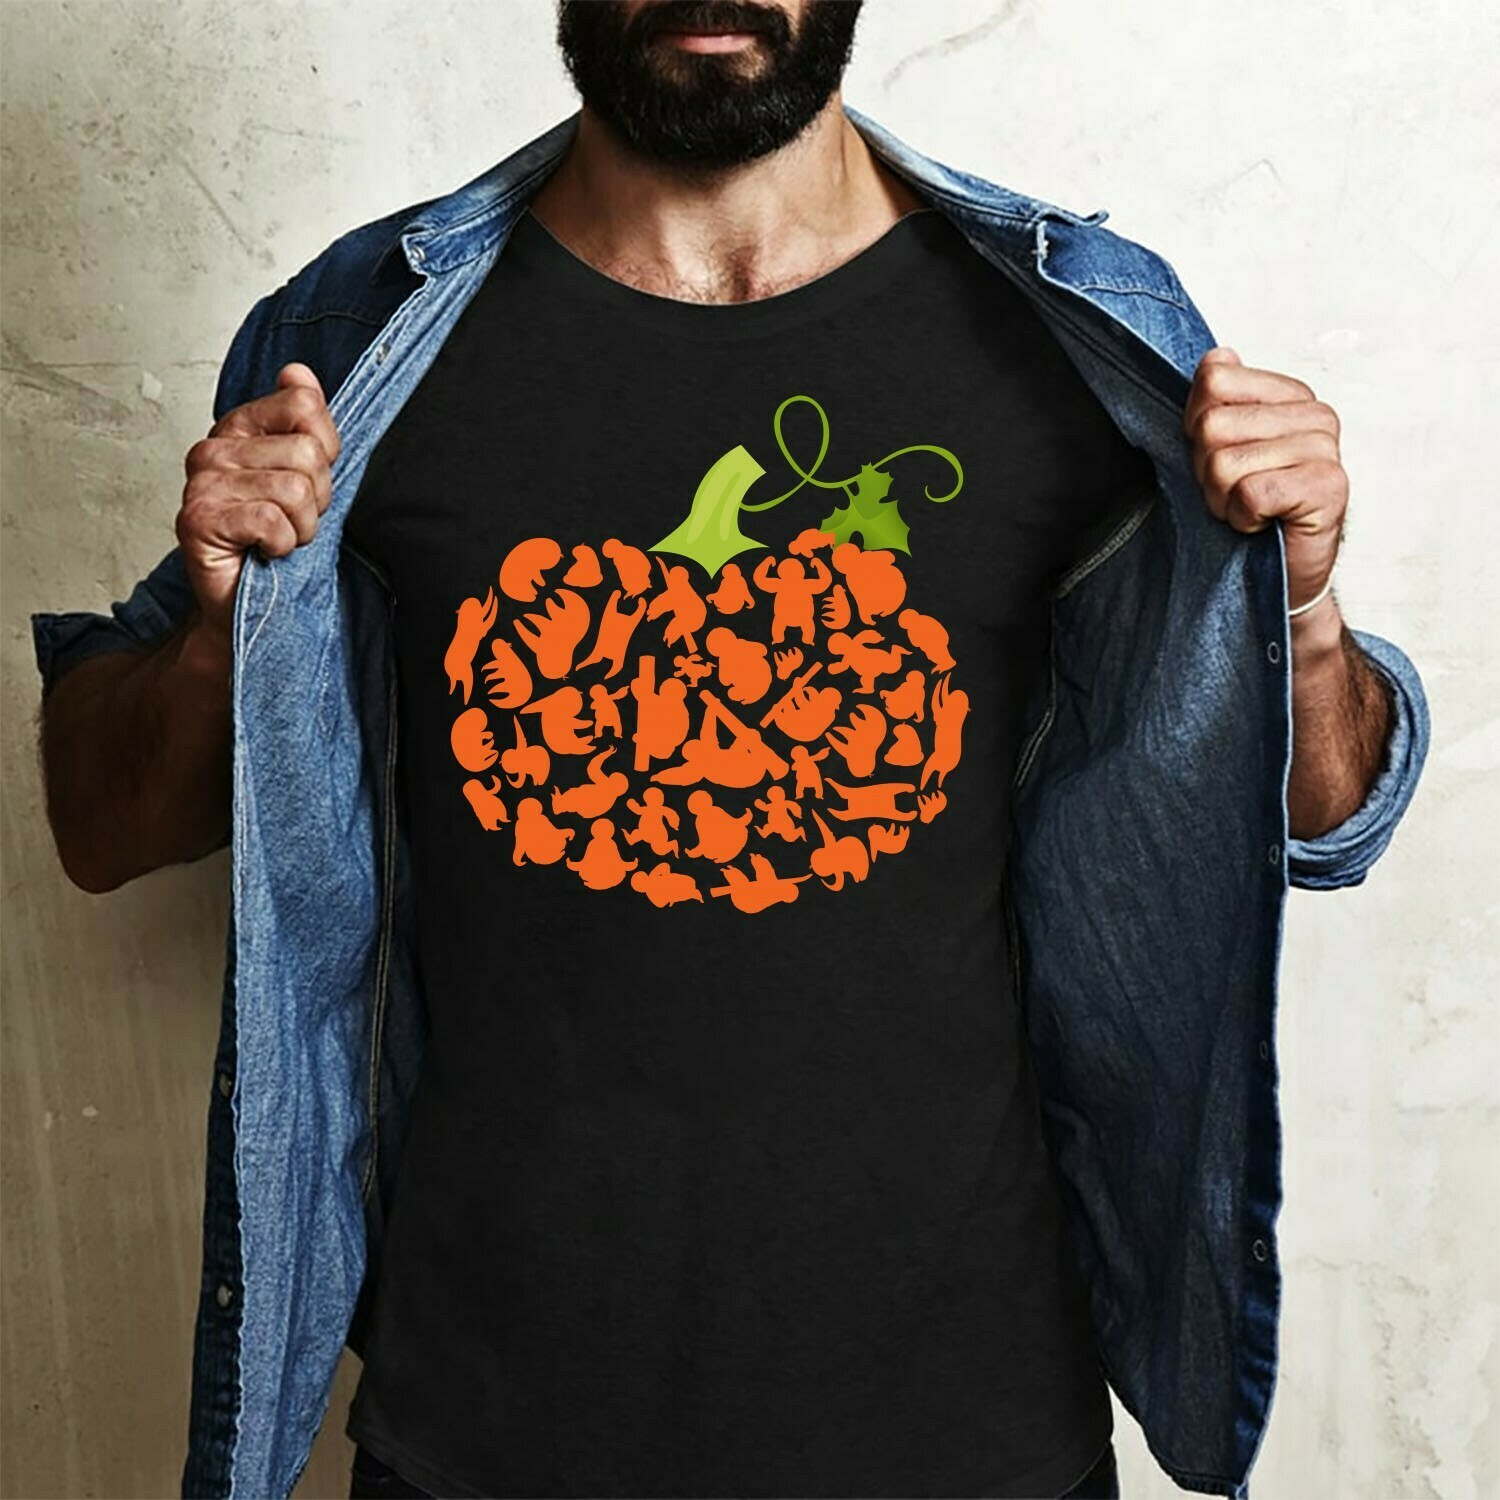 Pumpkin Sloth - Cute Sloth enthusiasts Gift Pumpkin lovers, T Shirt For Friends Team Group Halloween day Long Sleeve Sweatshirt Hoodie Jolly Family Gifts